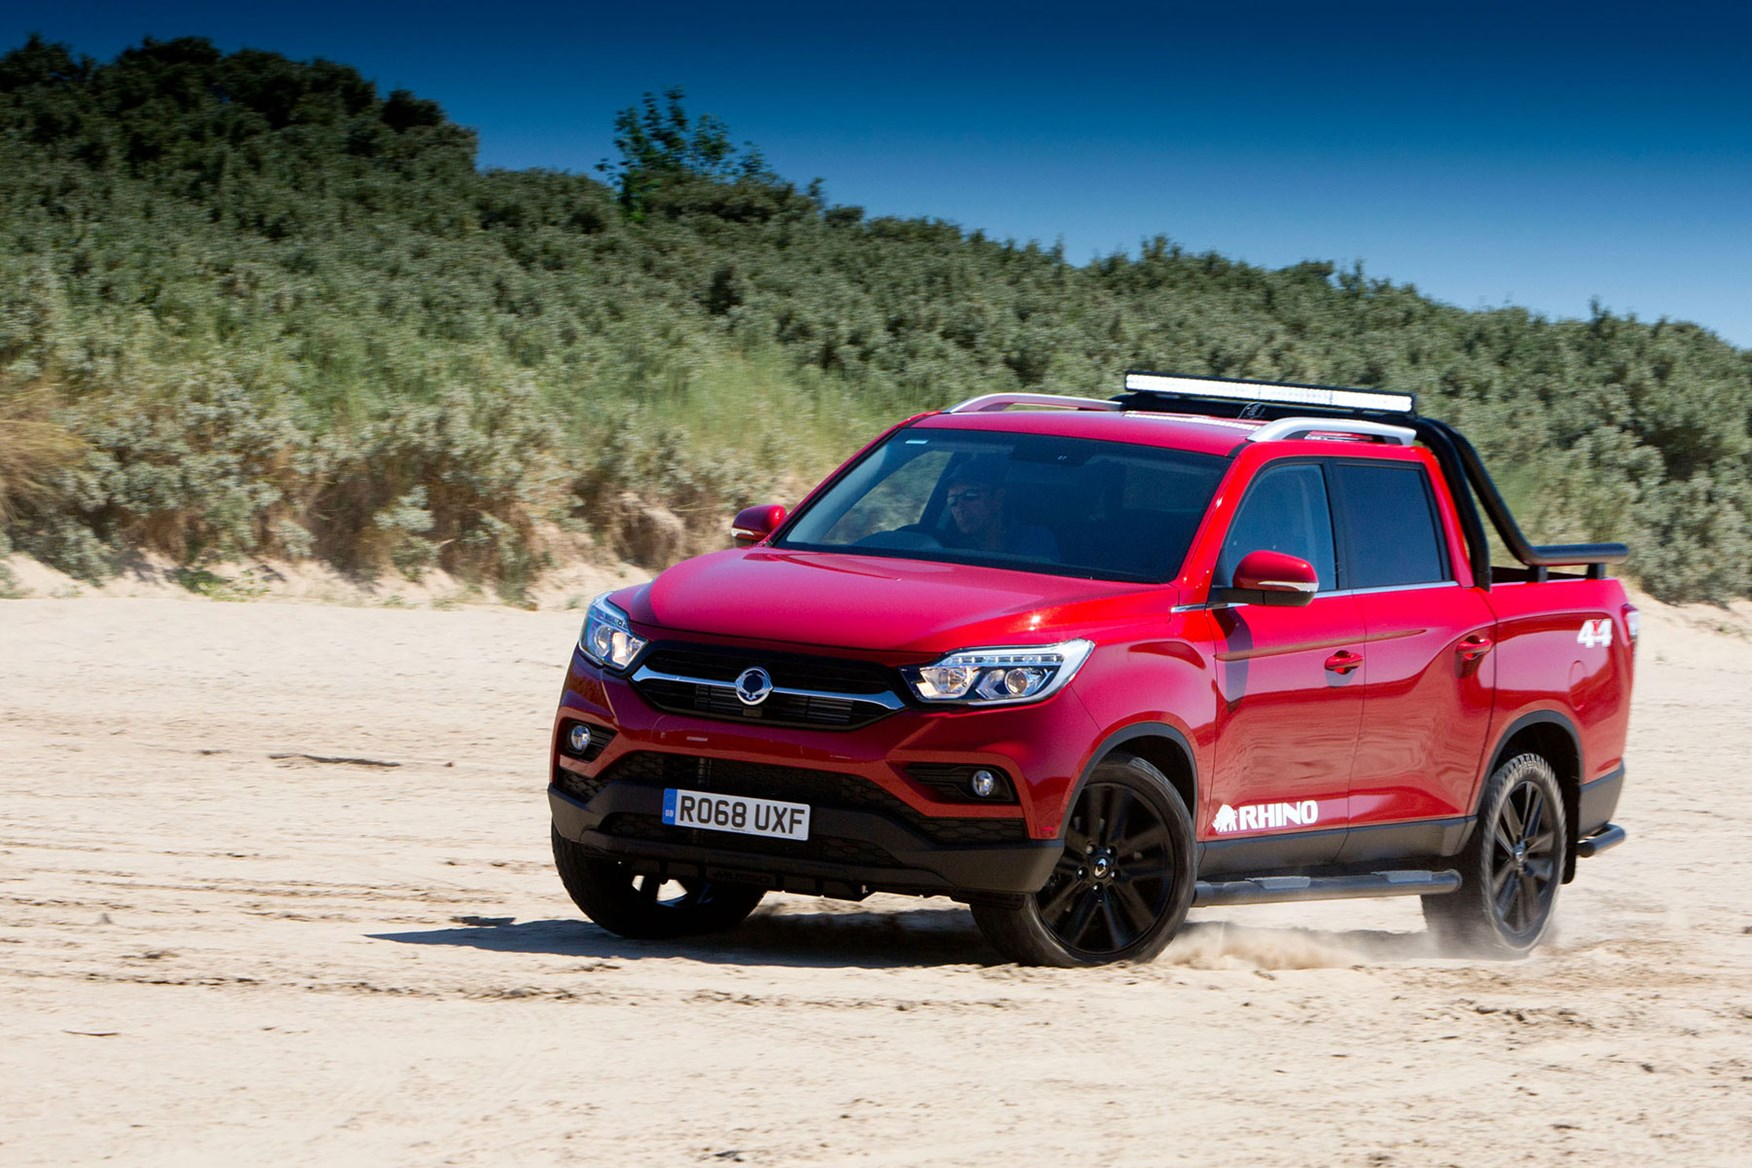 SsangYong Musso (2018-on) review, Rhino, front view, red, driving on sand